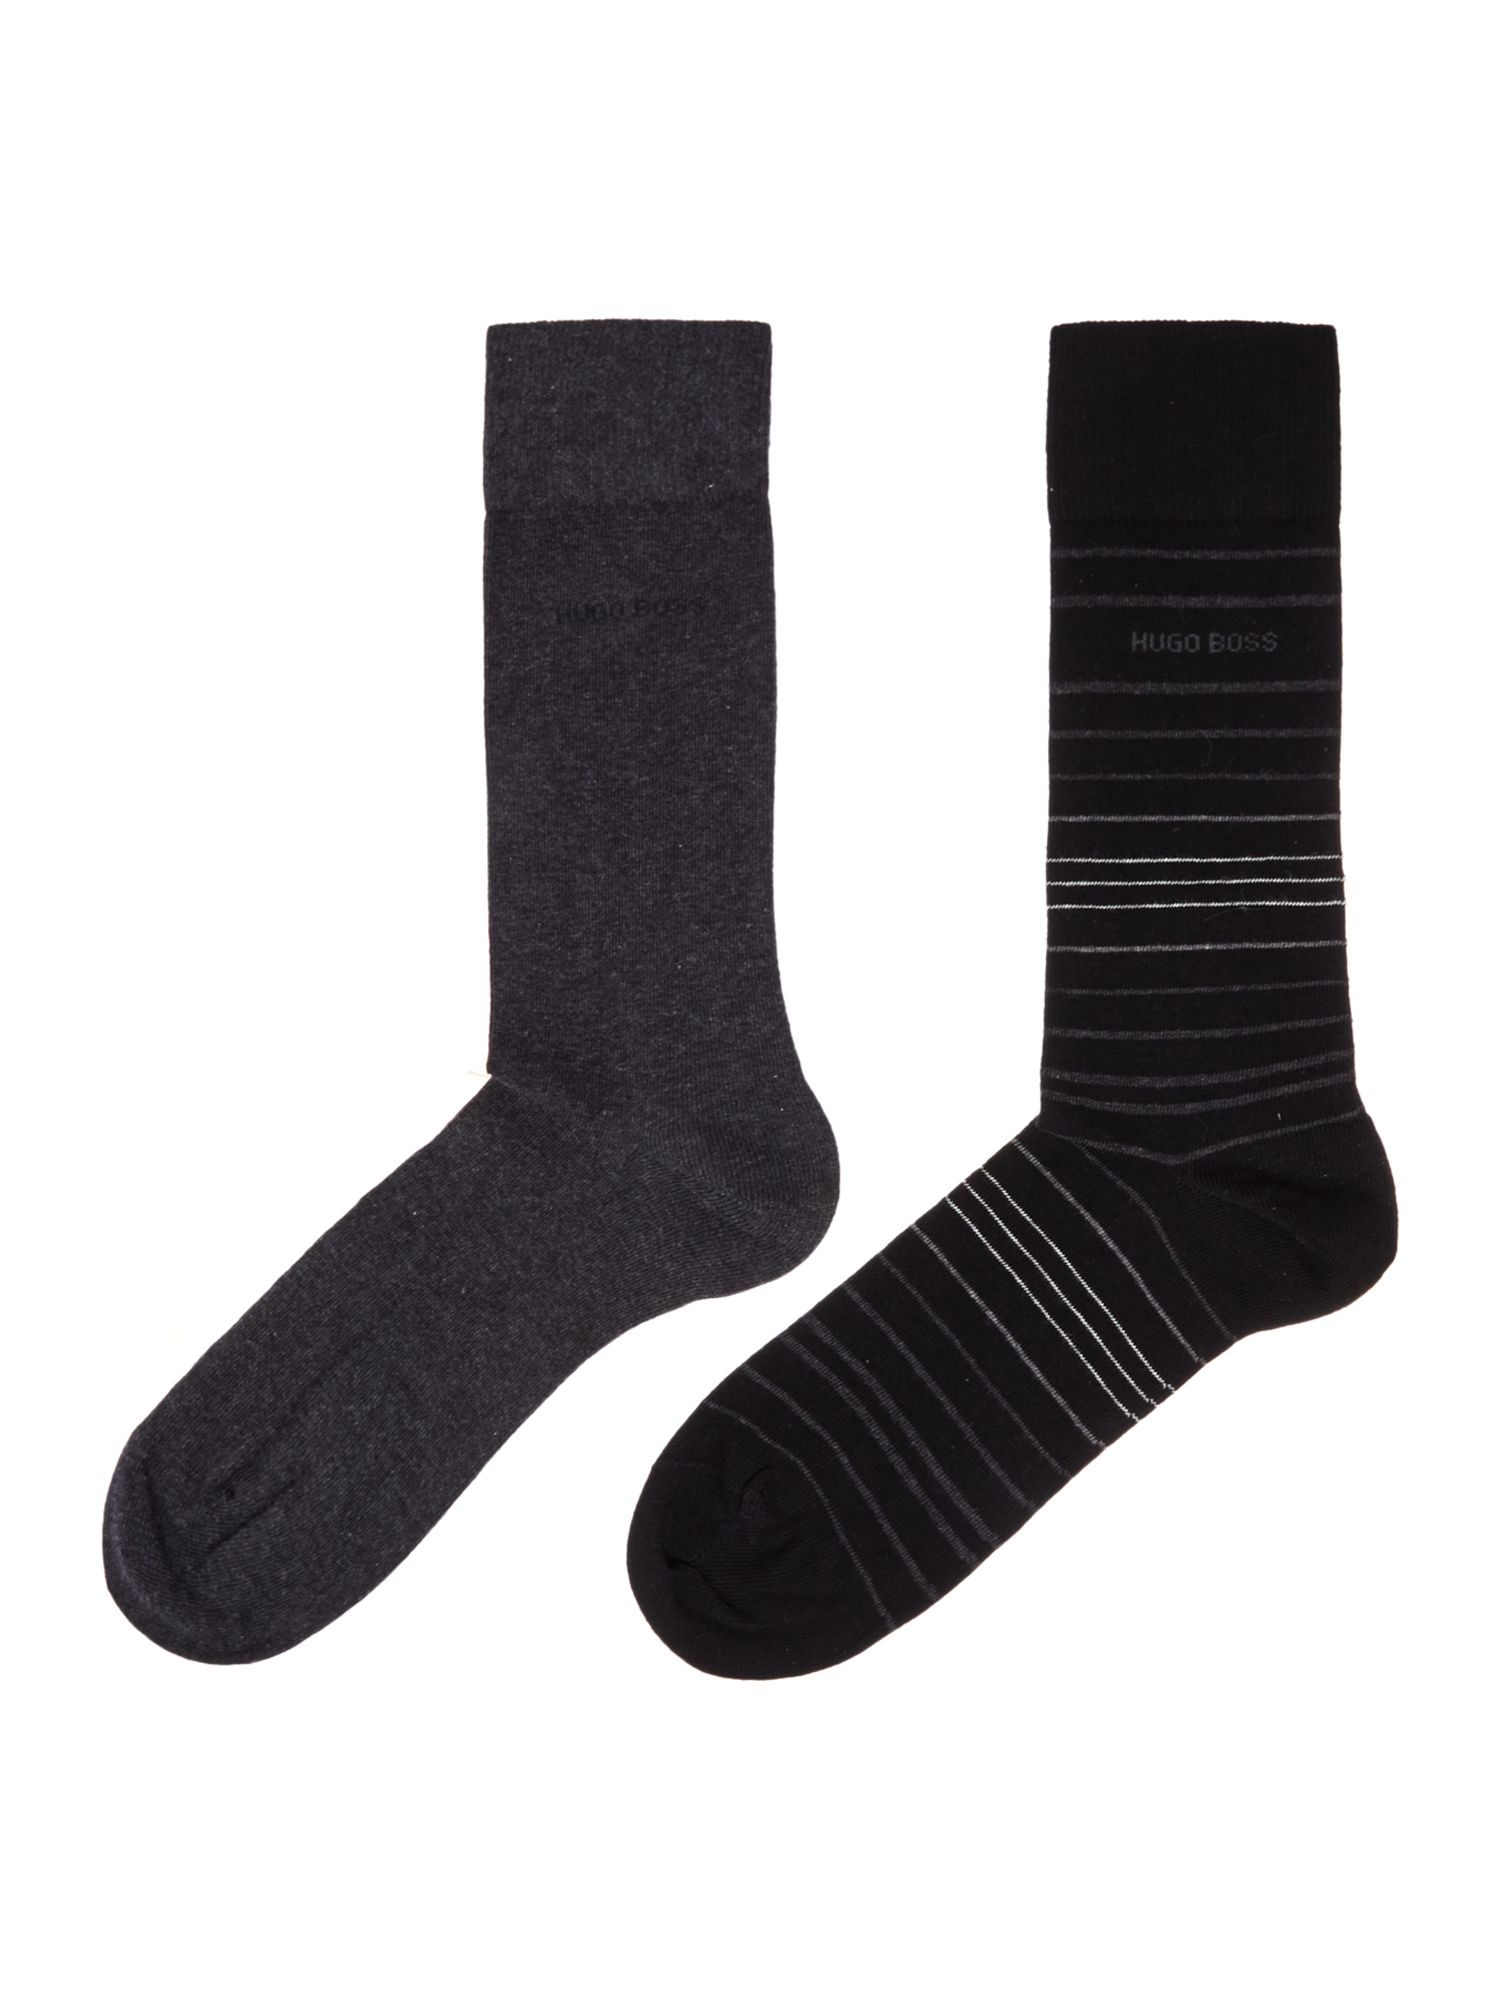 Mens Hugo Boss 2 Pack Stripe and Plain Socks Black